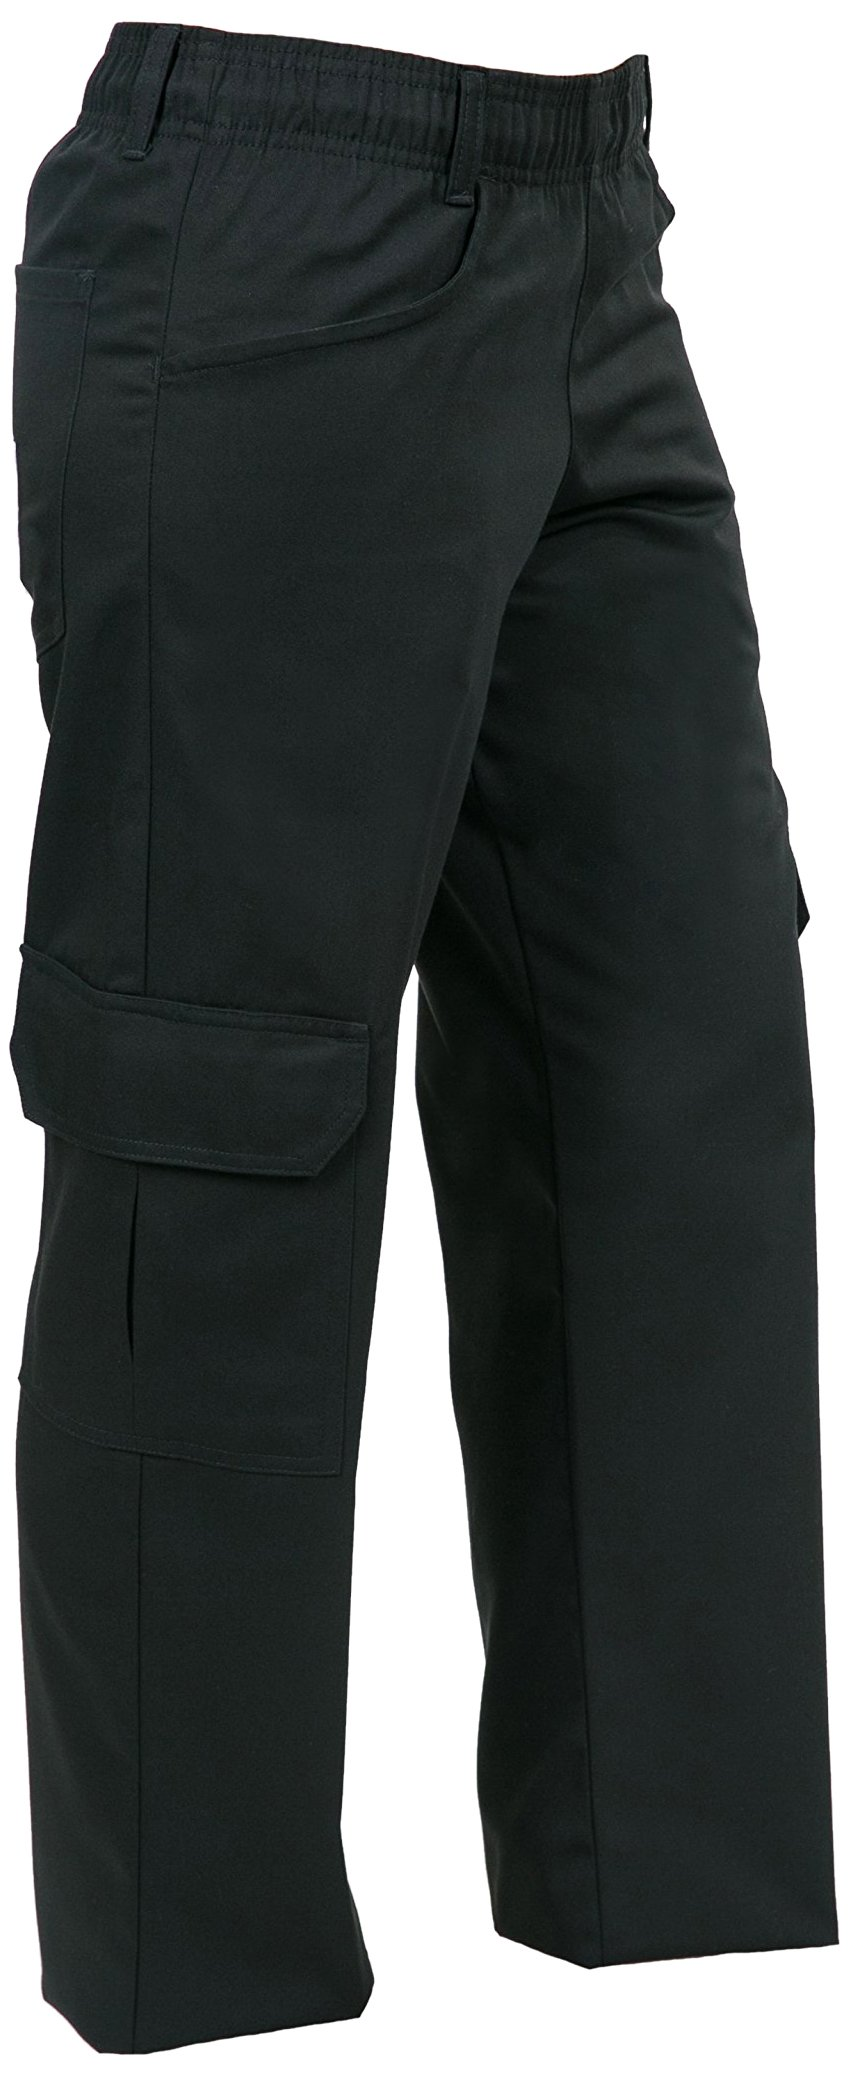 Mercer Culinary M61100BK3X Genesis Women's Chef Cargo Pant, 3X-Large, Black by Mercer Culinary